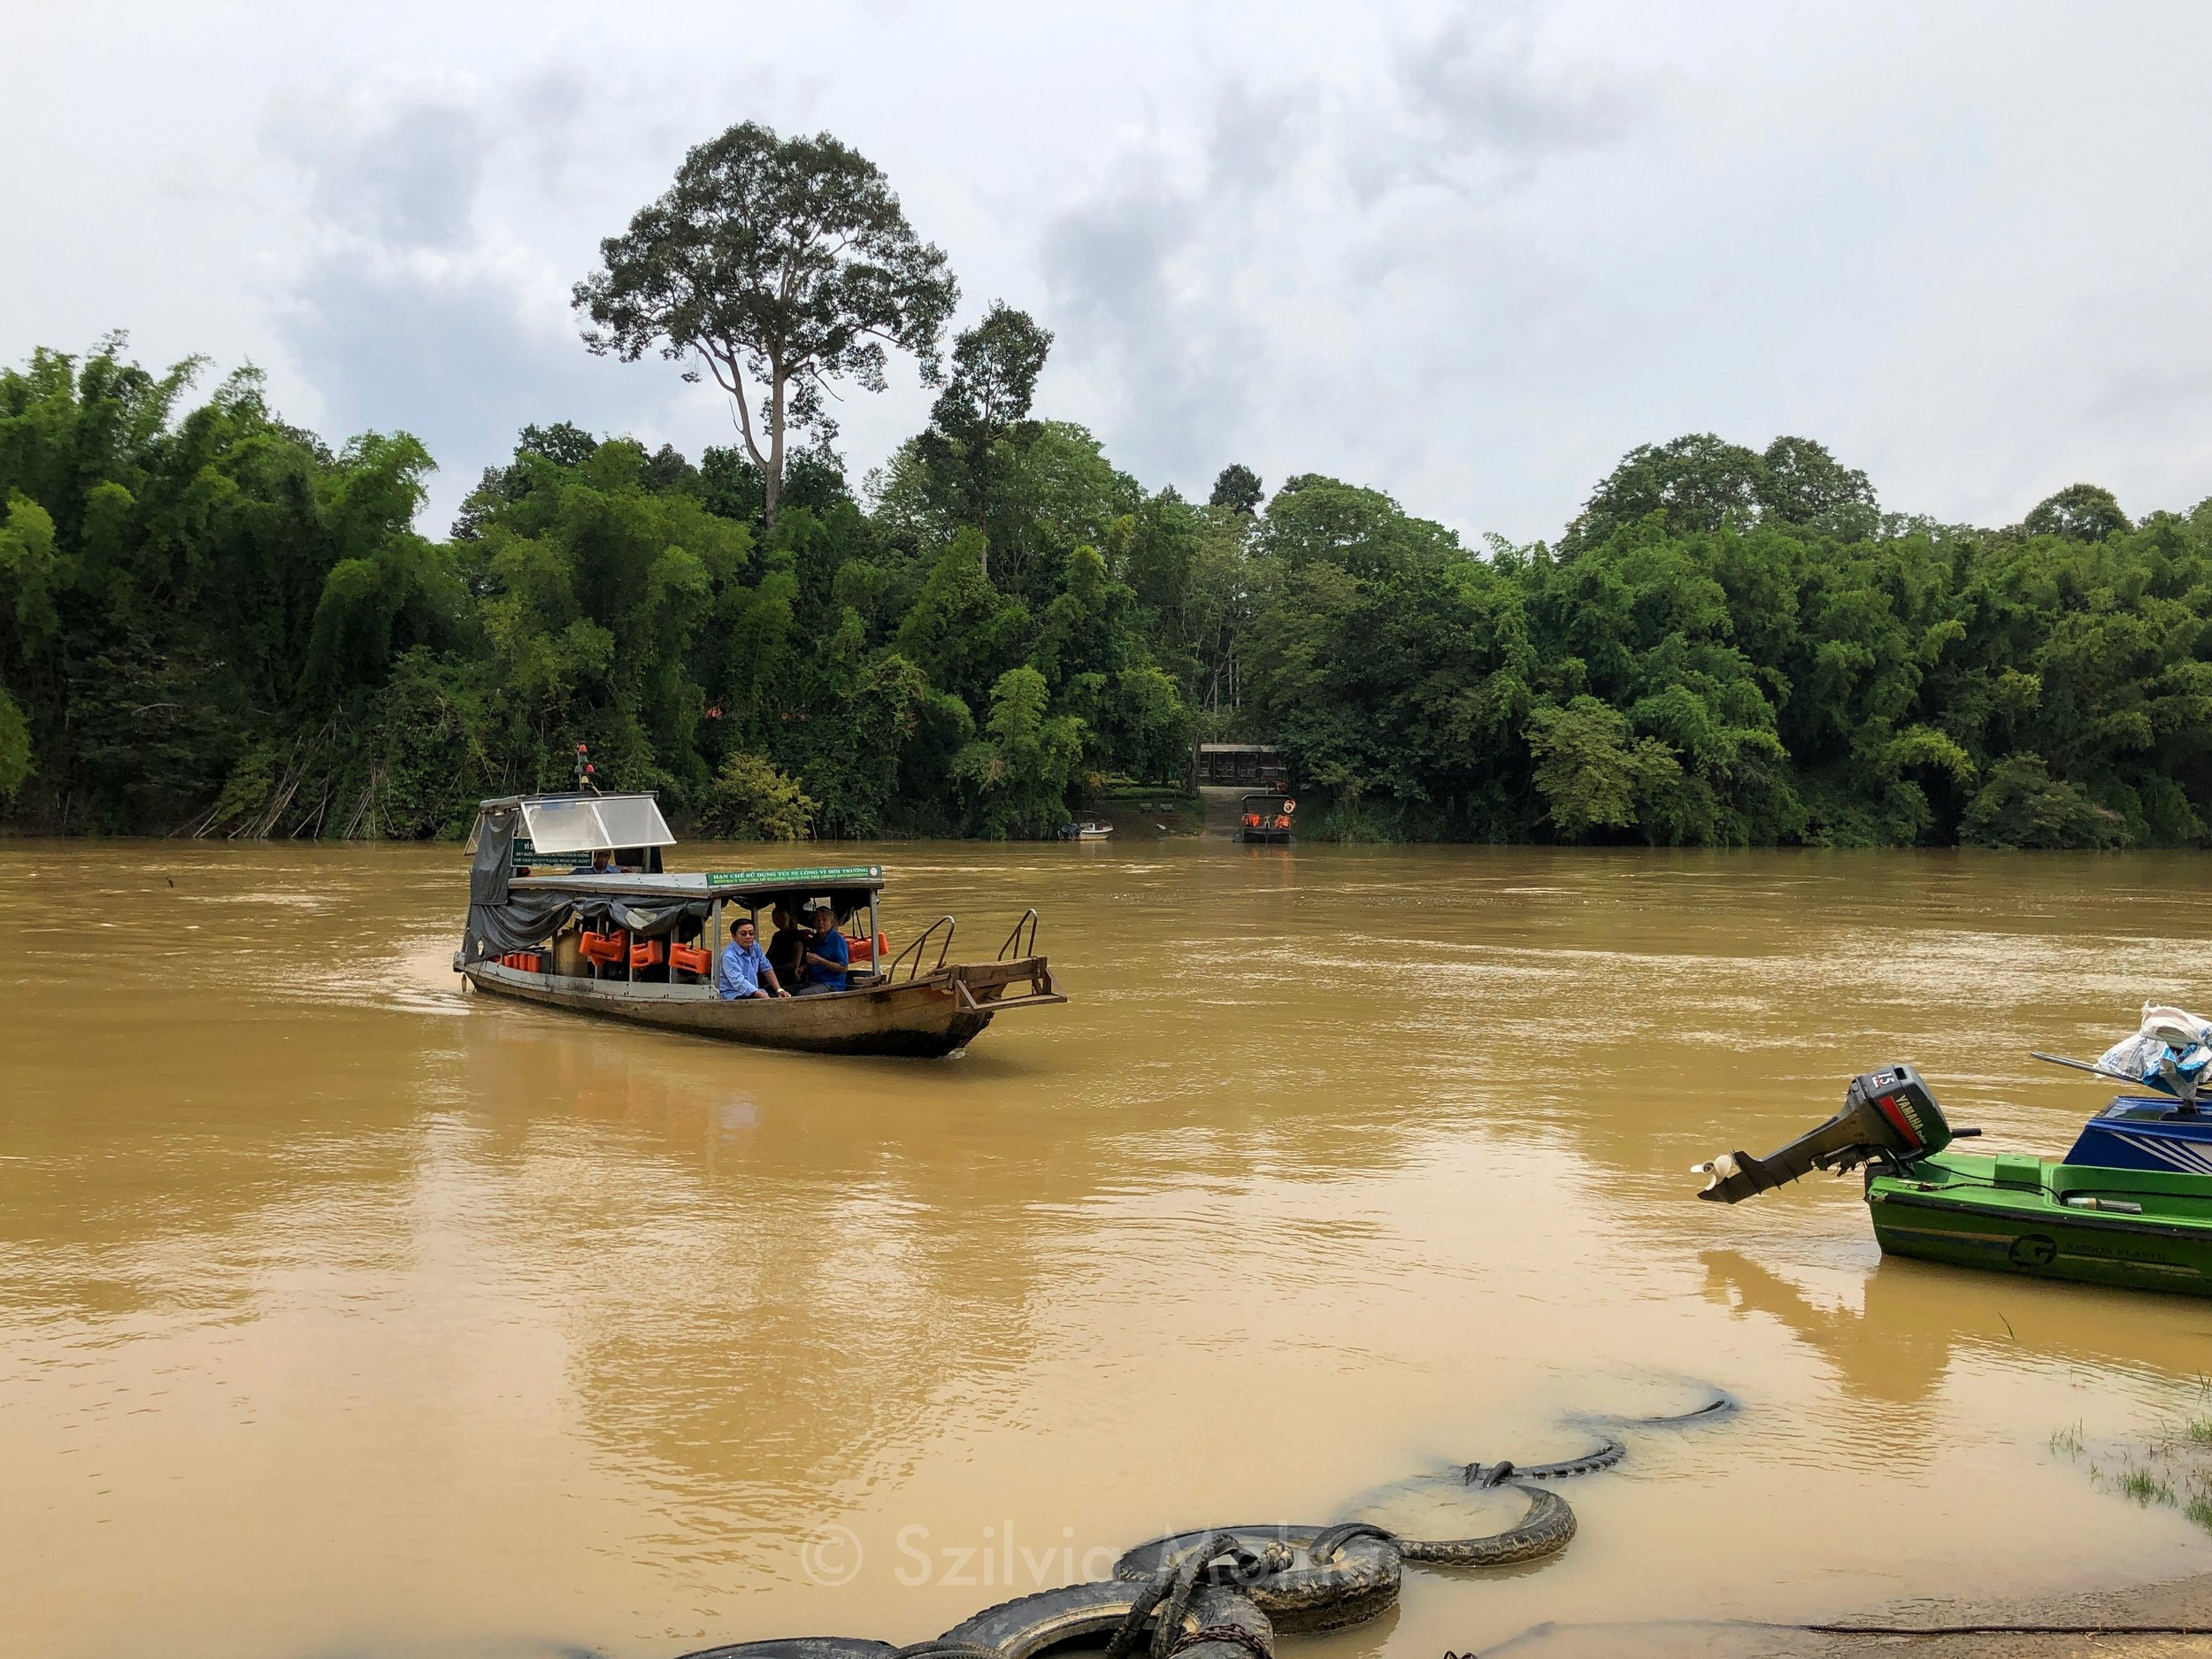 The ferry that takes you to the national park side of the river